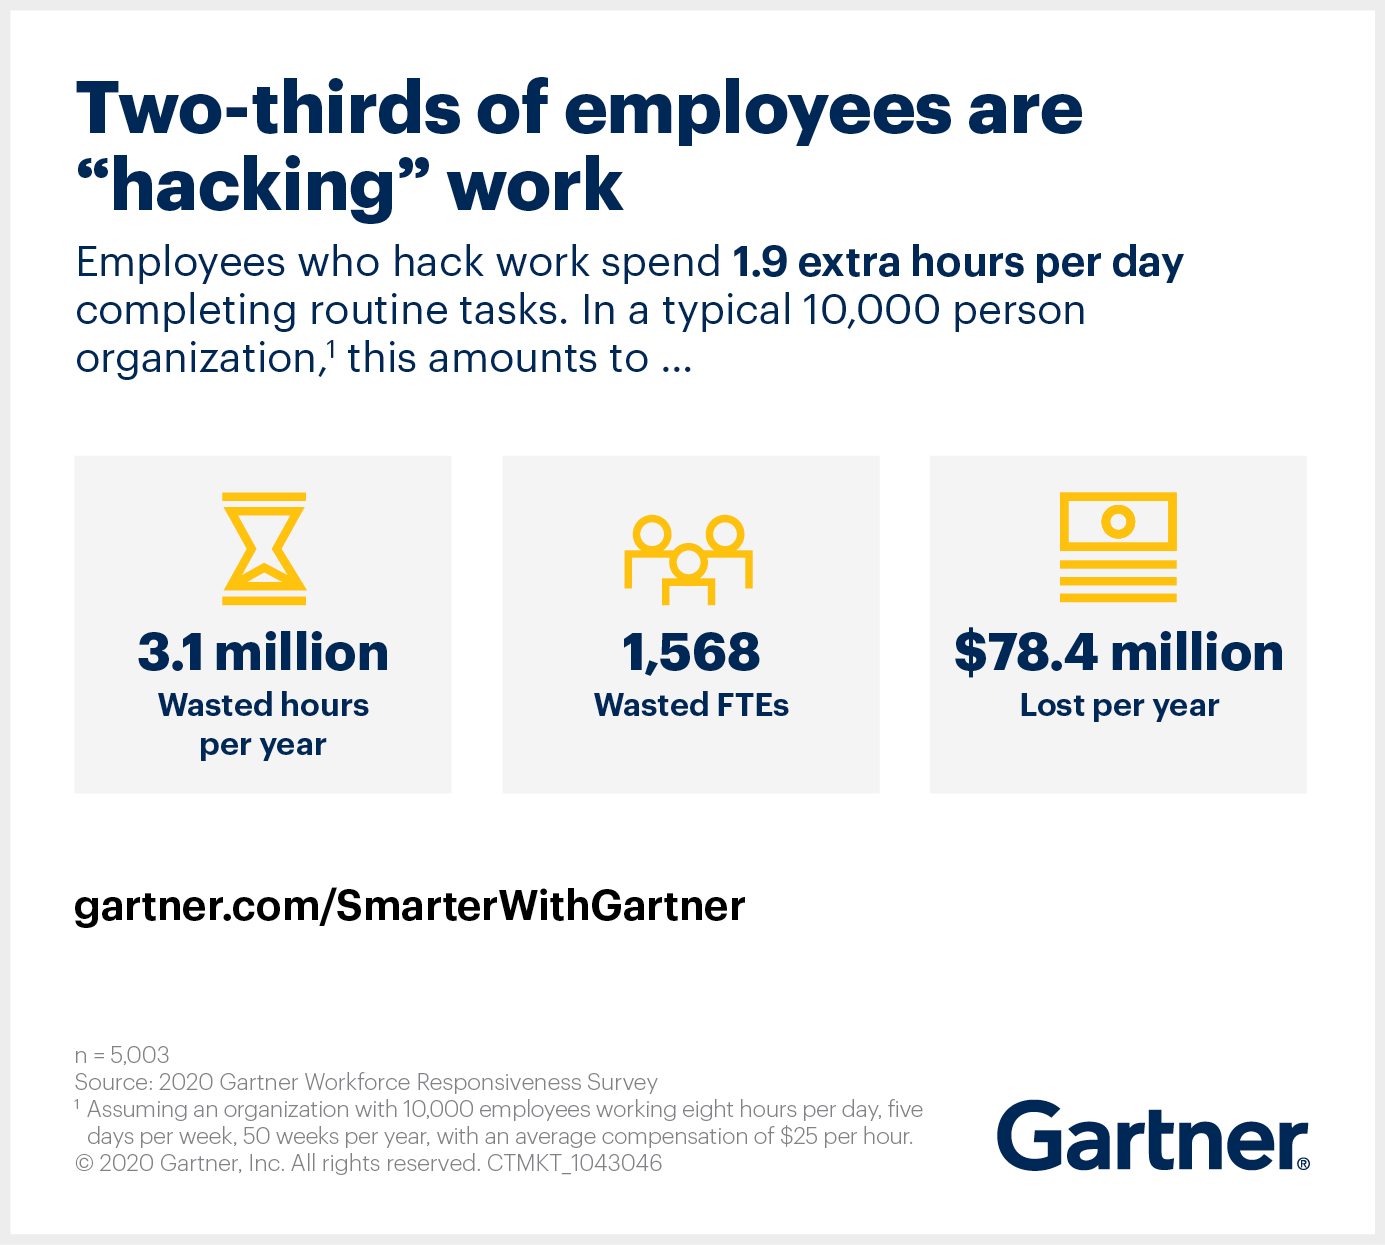 Gartner research shows two-thirds of employees are hacking their work to get around poor work design.